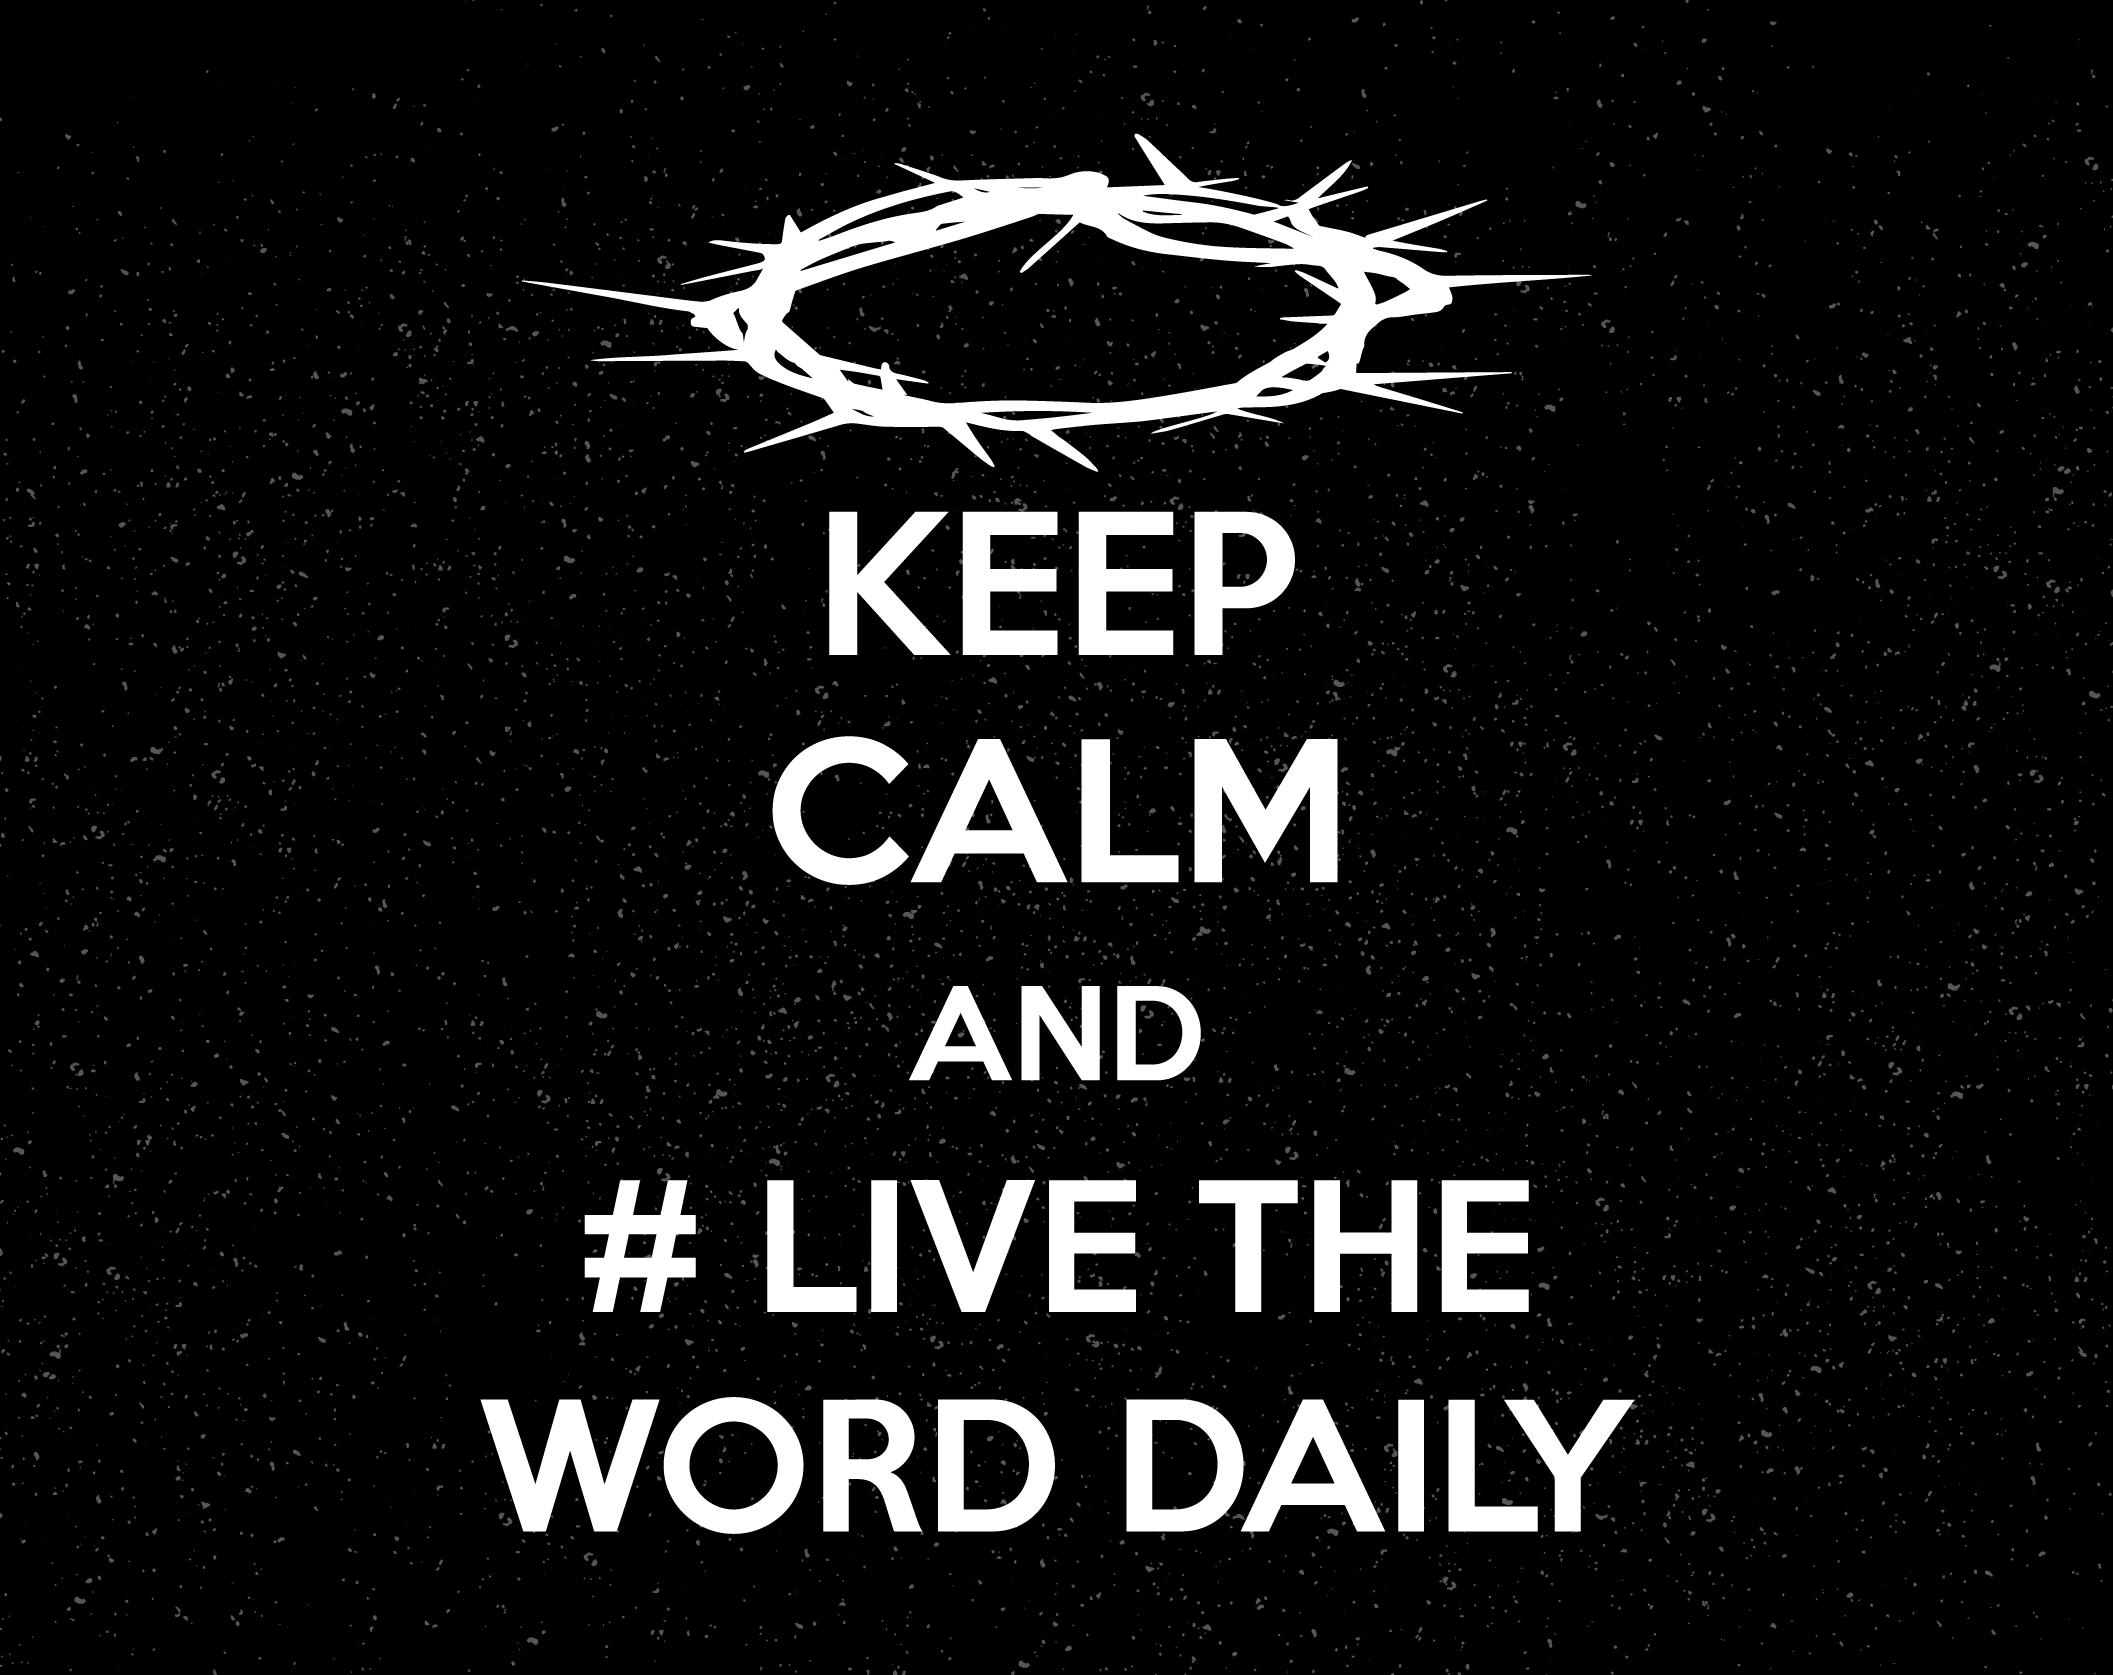 keepcalm_livetheworddaily-fb-square.png